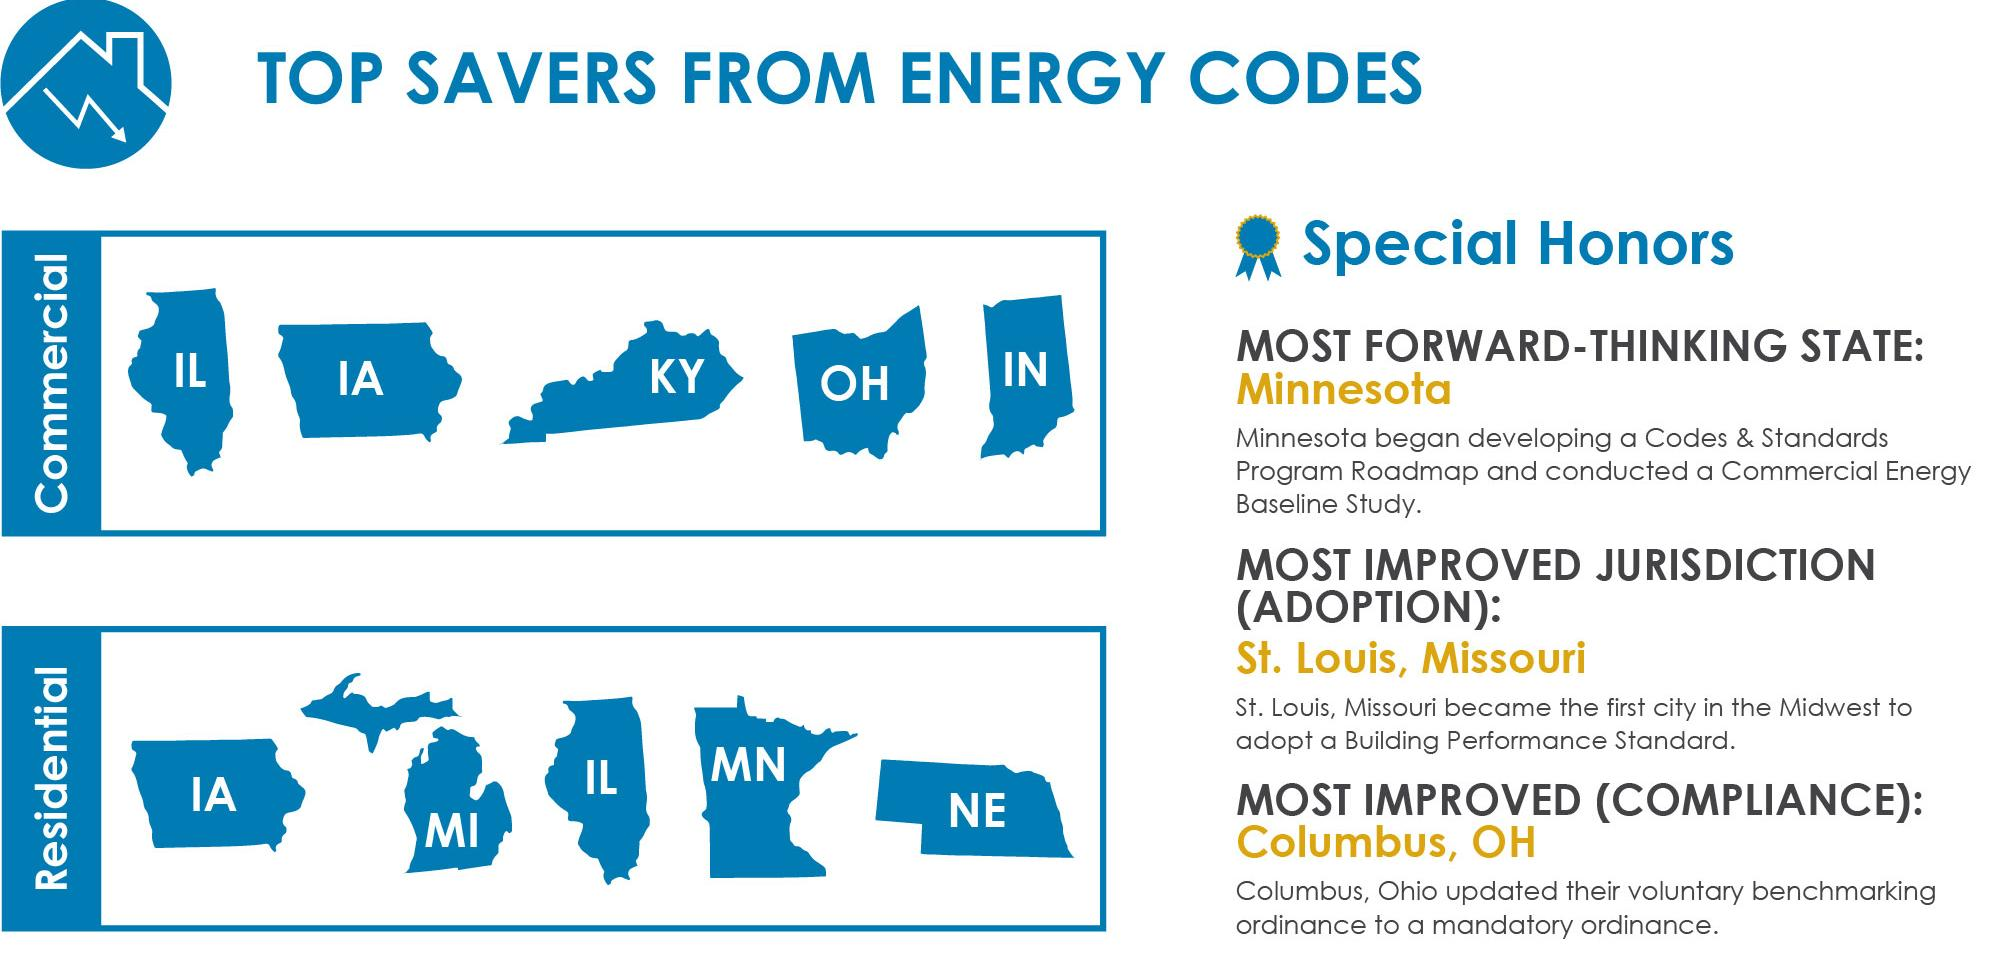 states that save the most from energy codes